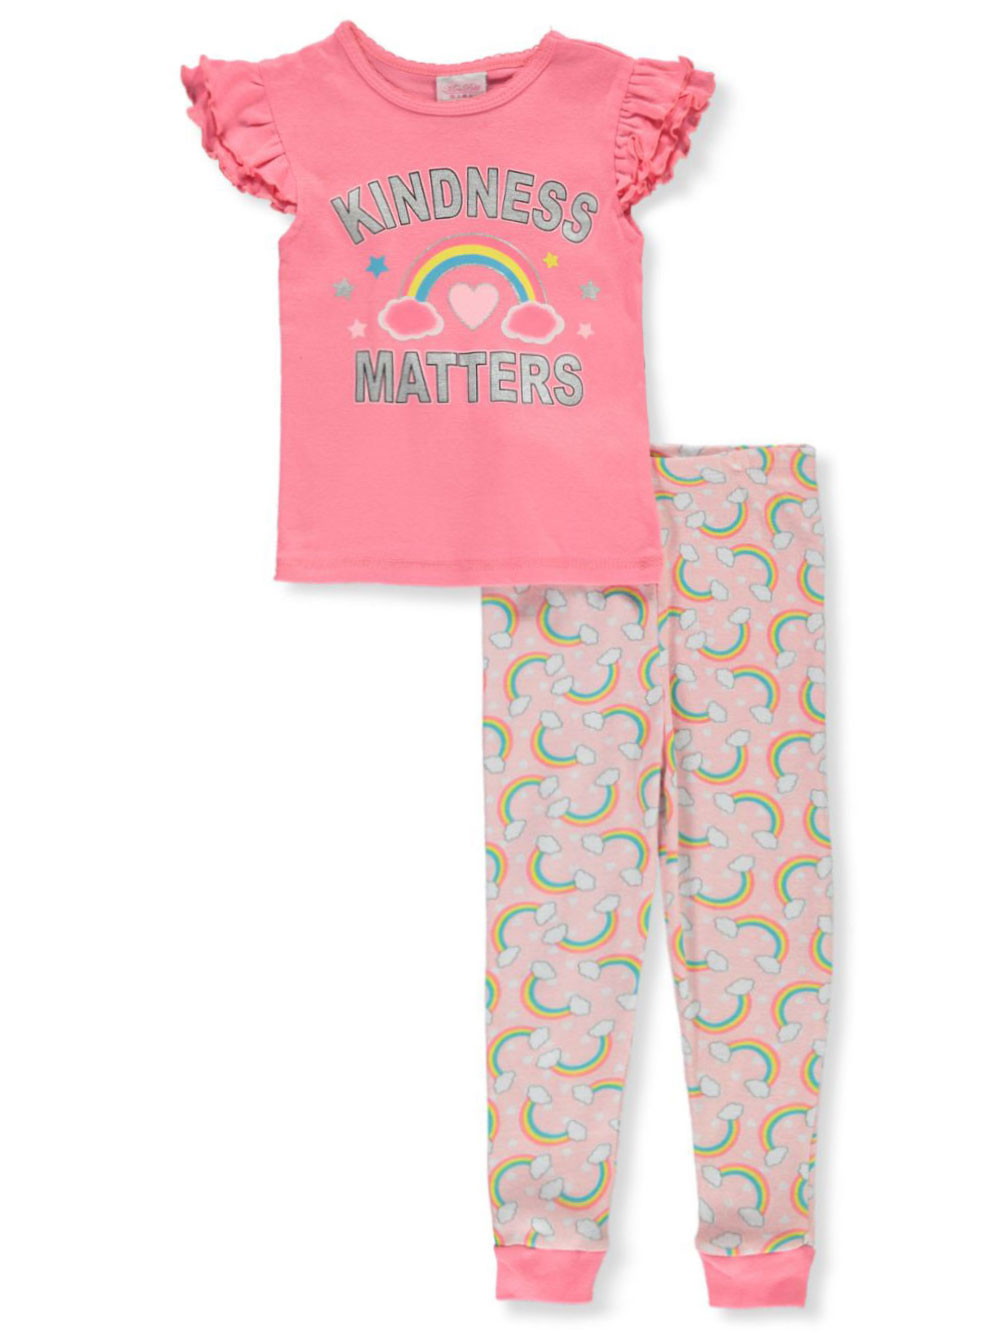 Girls White and Multicolor Pajamas